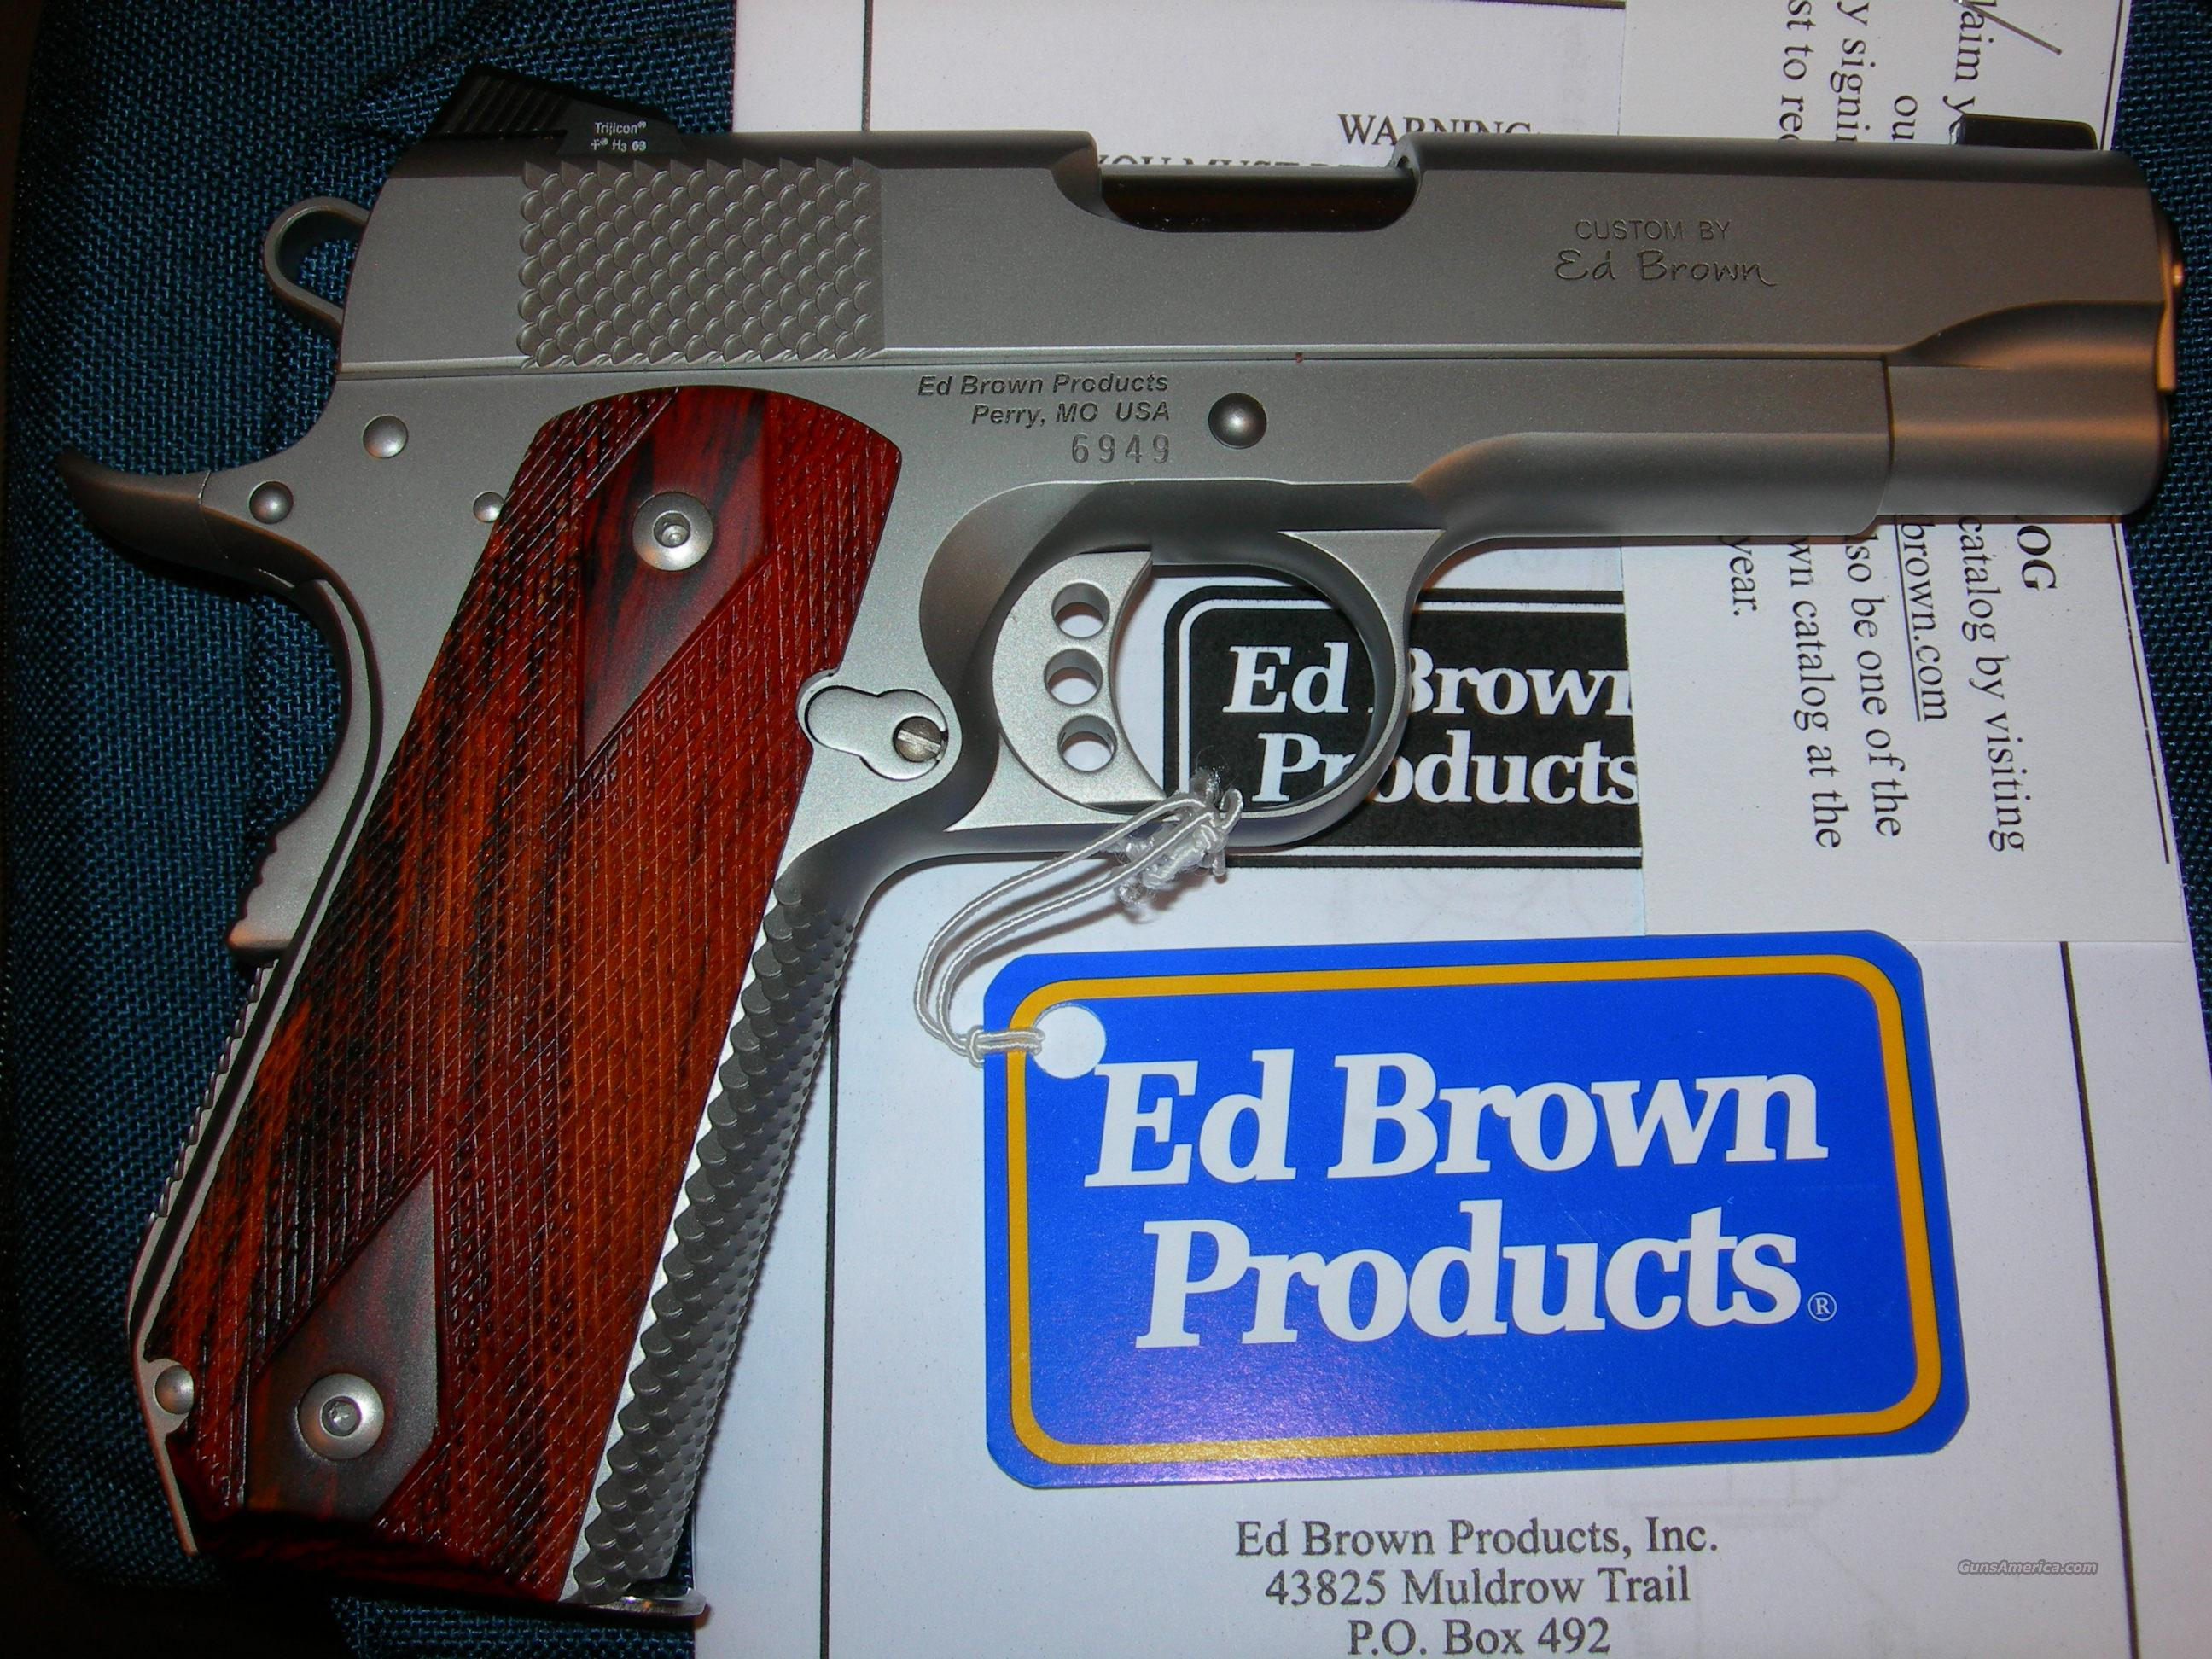 Ed Brown Products Kobra Carry (all stainless) 4.25 inch .45 ACP with Night Sights  Guns > Pistols > Ed Brown Pistols